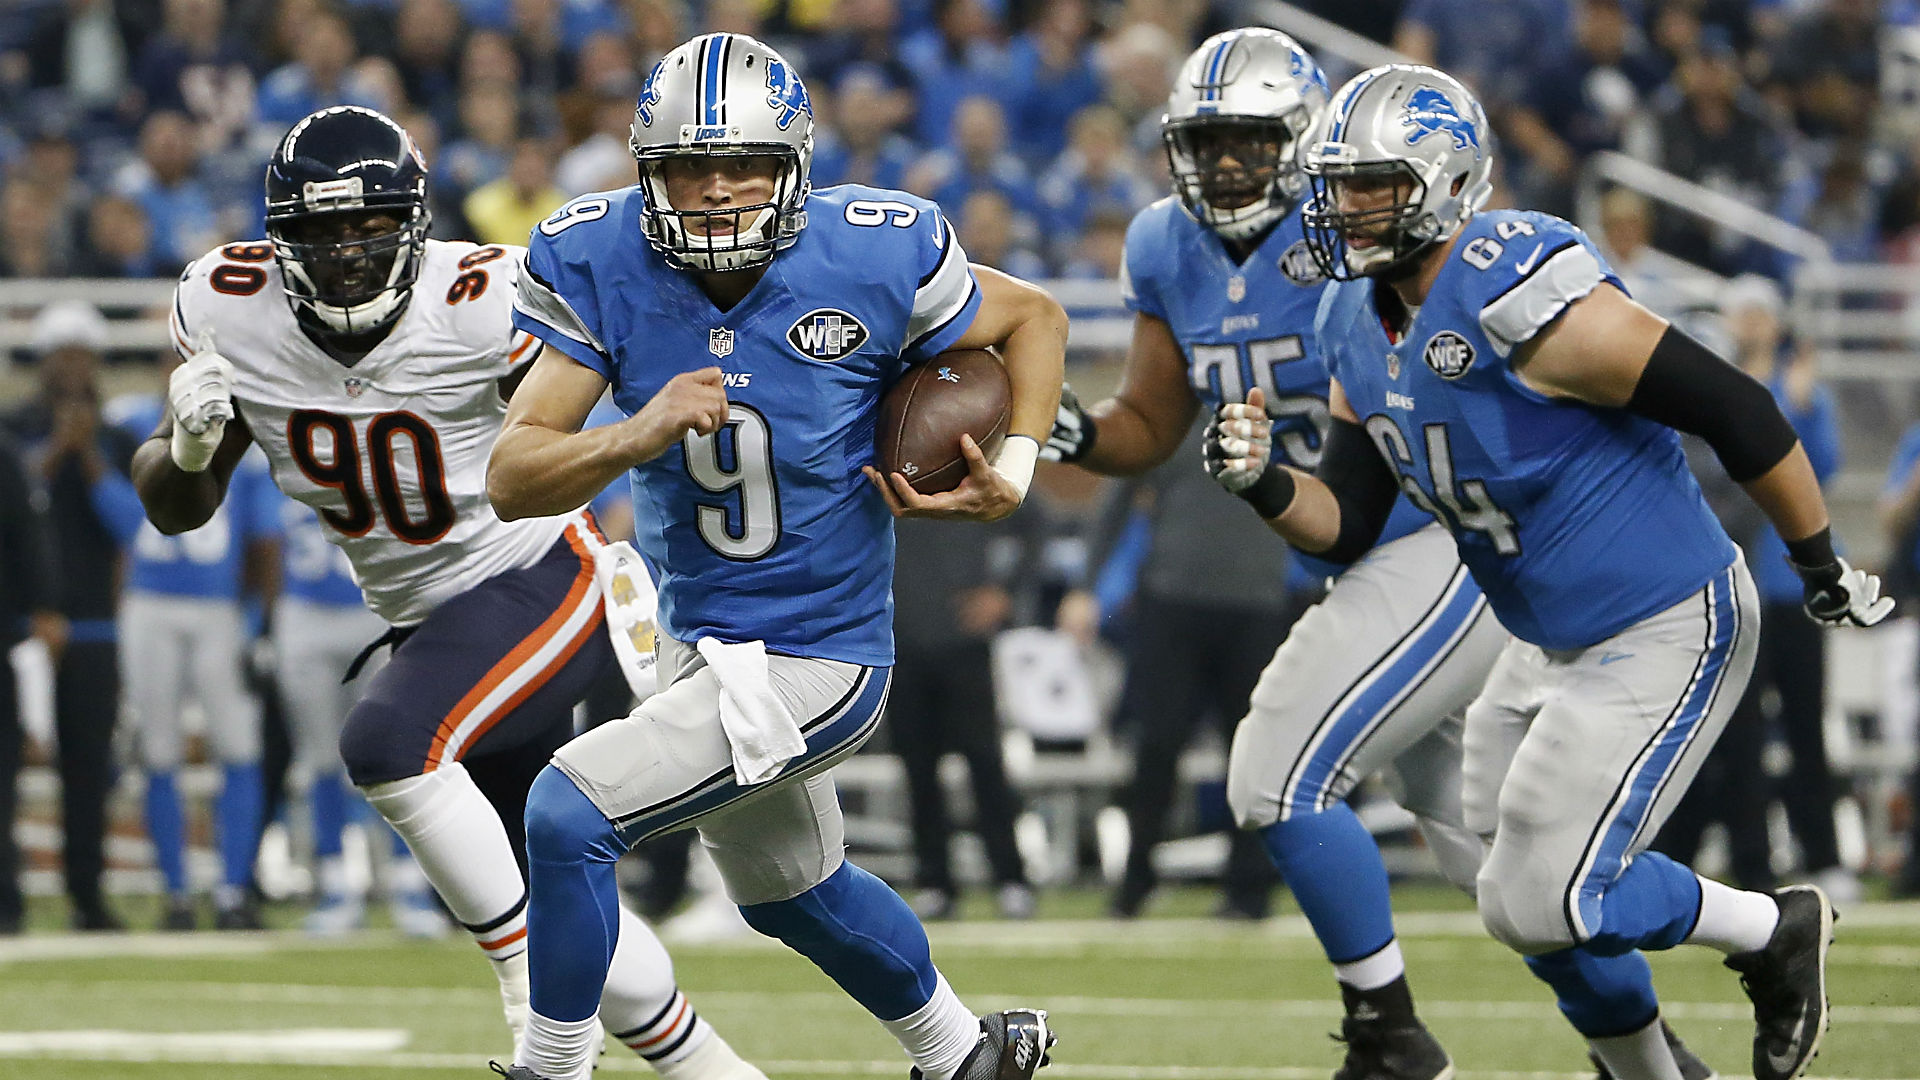 Lions vs. Eagles betting lines and picks – Money comes in on streaking Detroit